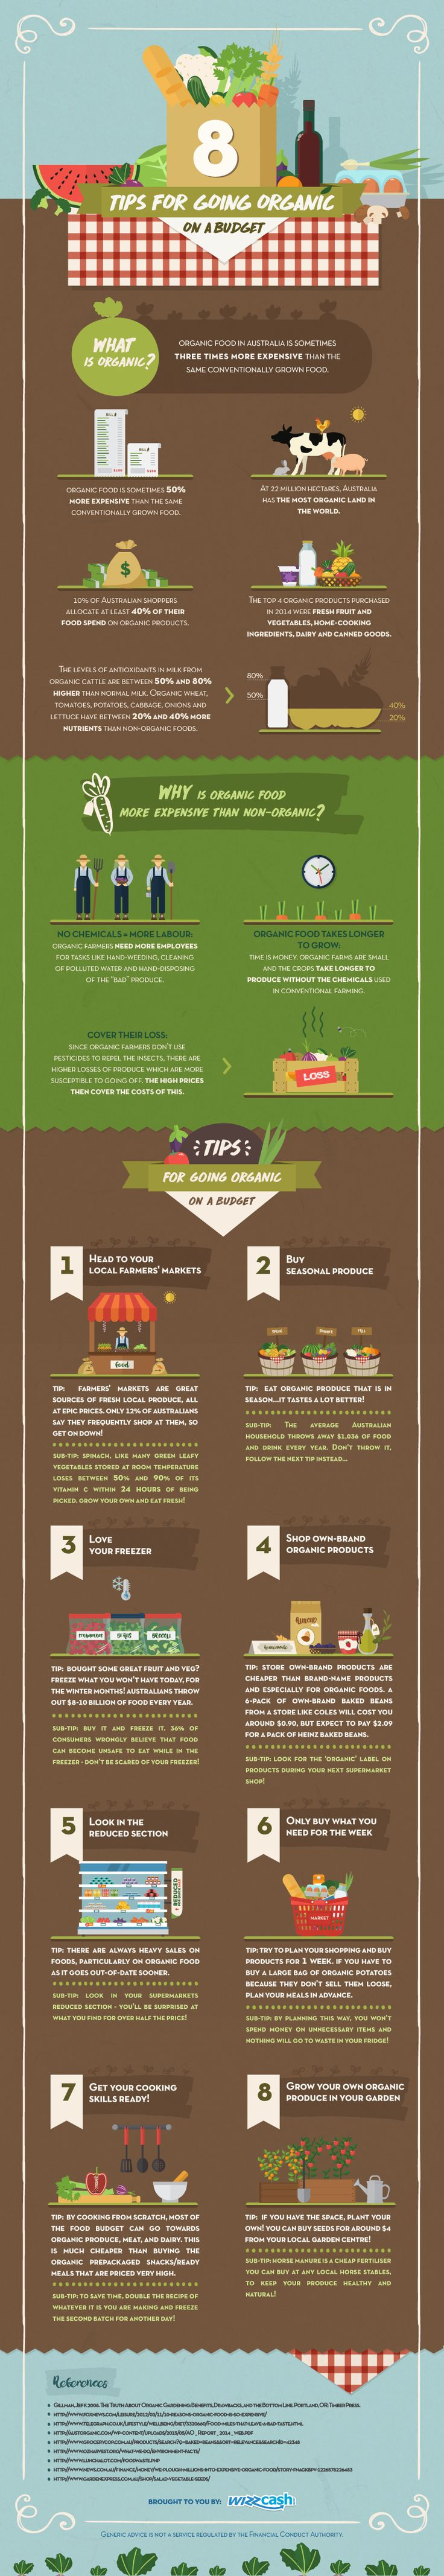 Tips for going organic